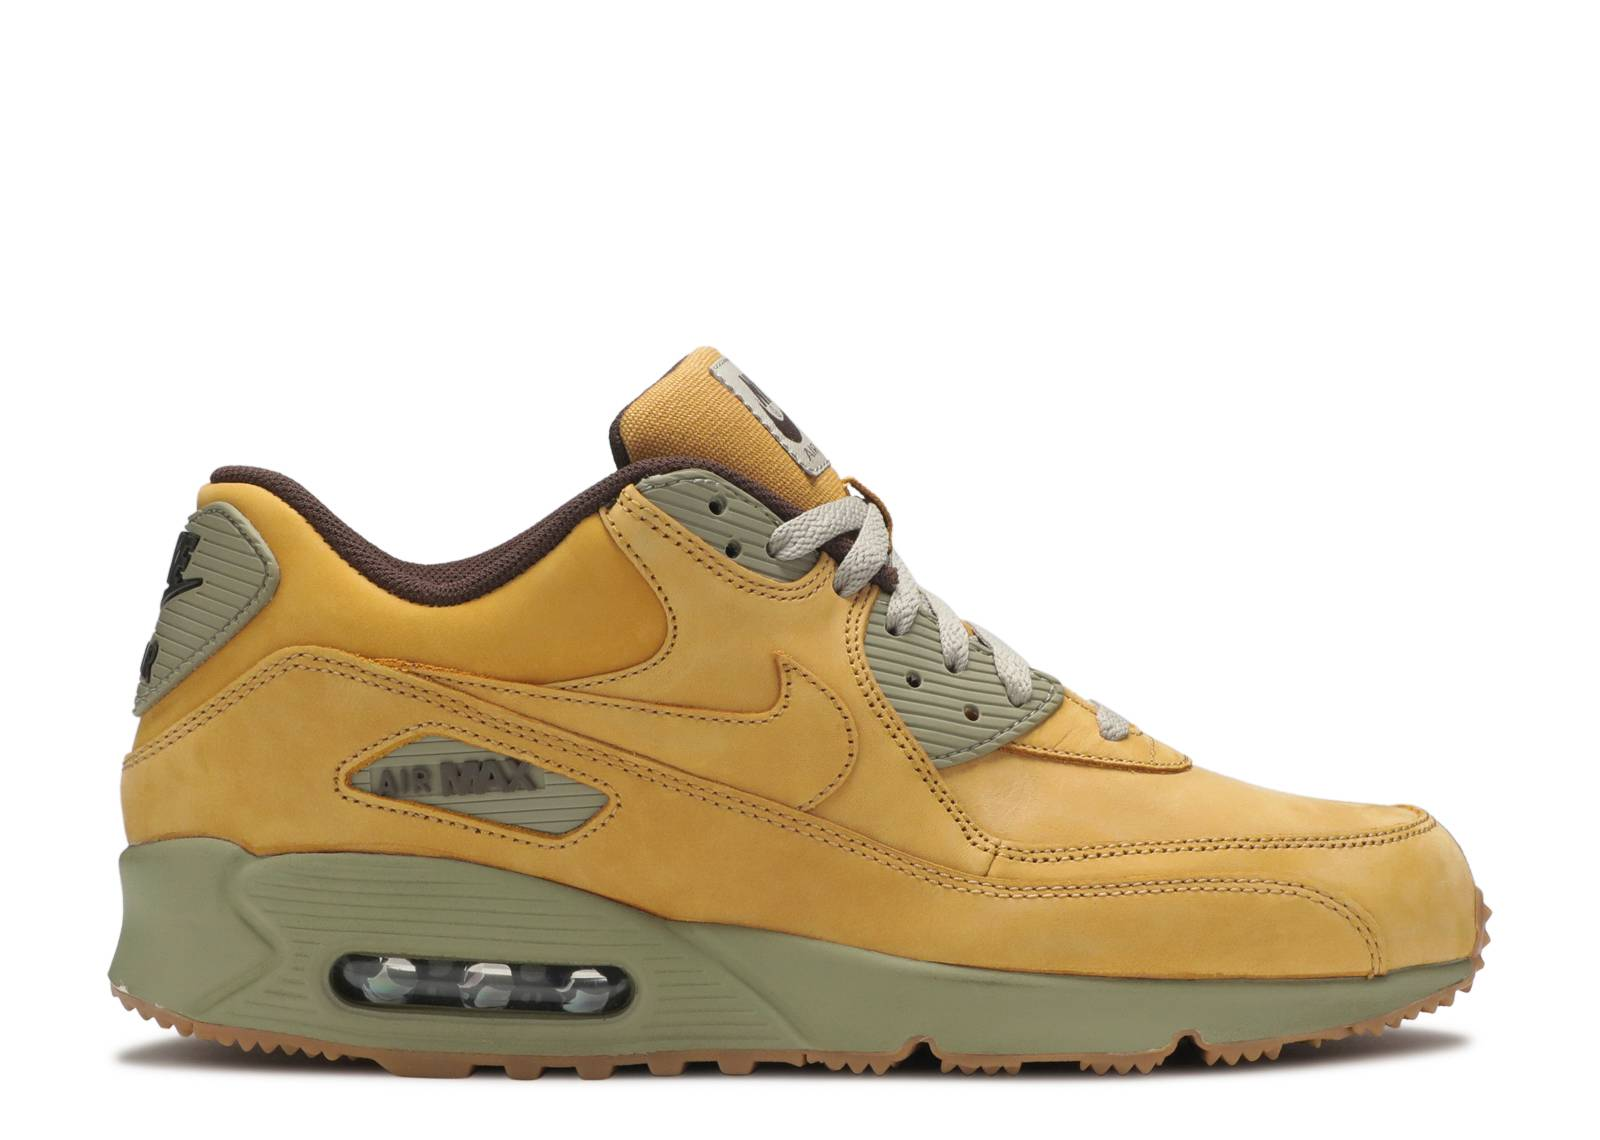 Nike Release Air Max Wheat Edition Upcoming this Month